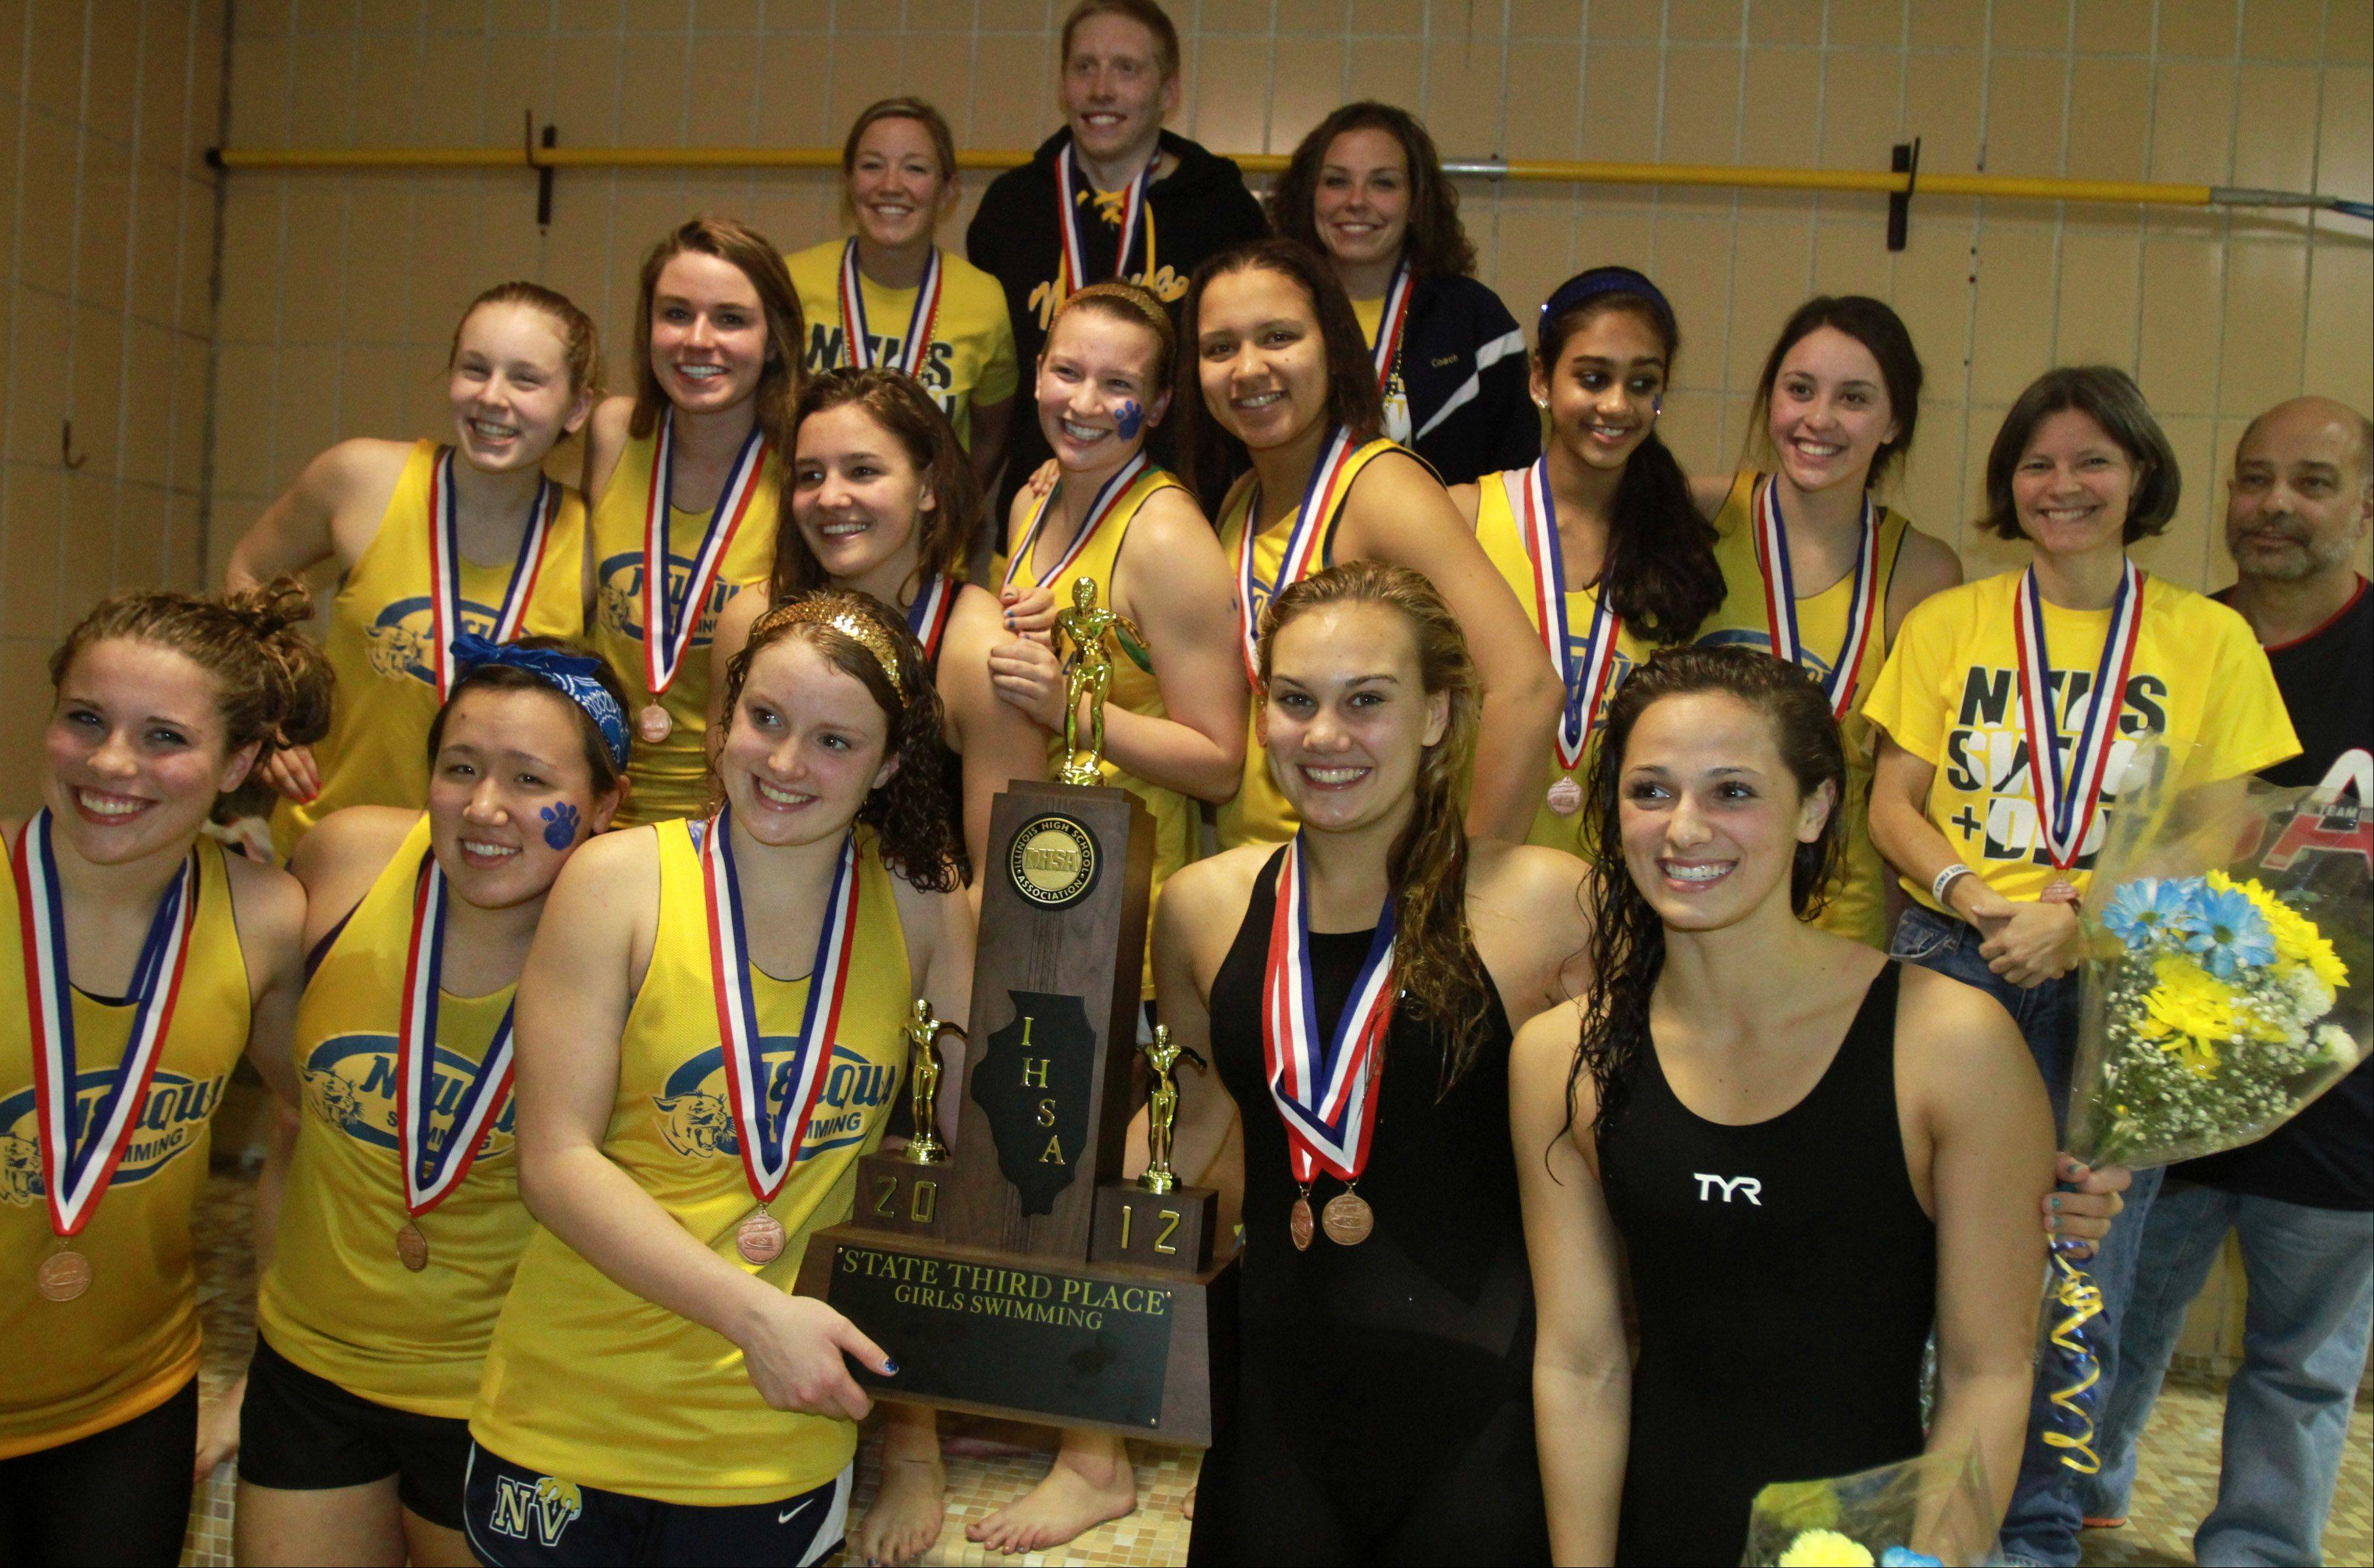 Neuqua Valley celebrates placing third at the IHSA state championships in Evanston on Saturday.